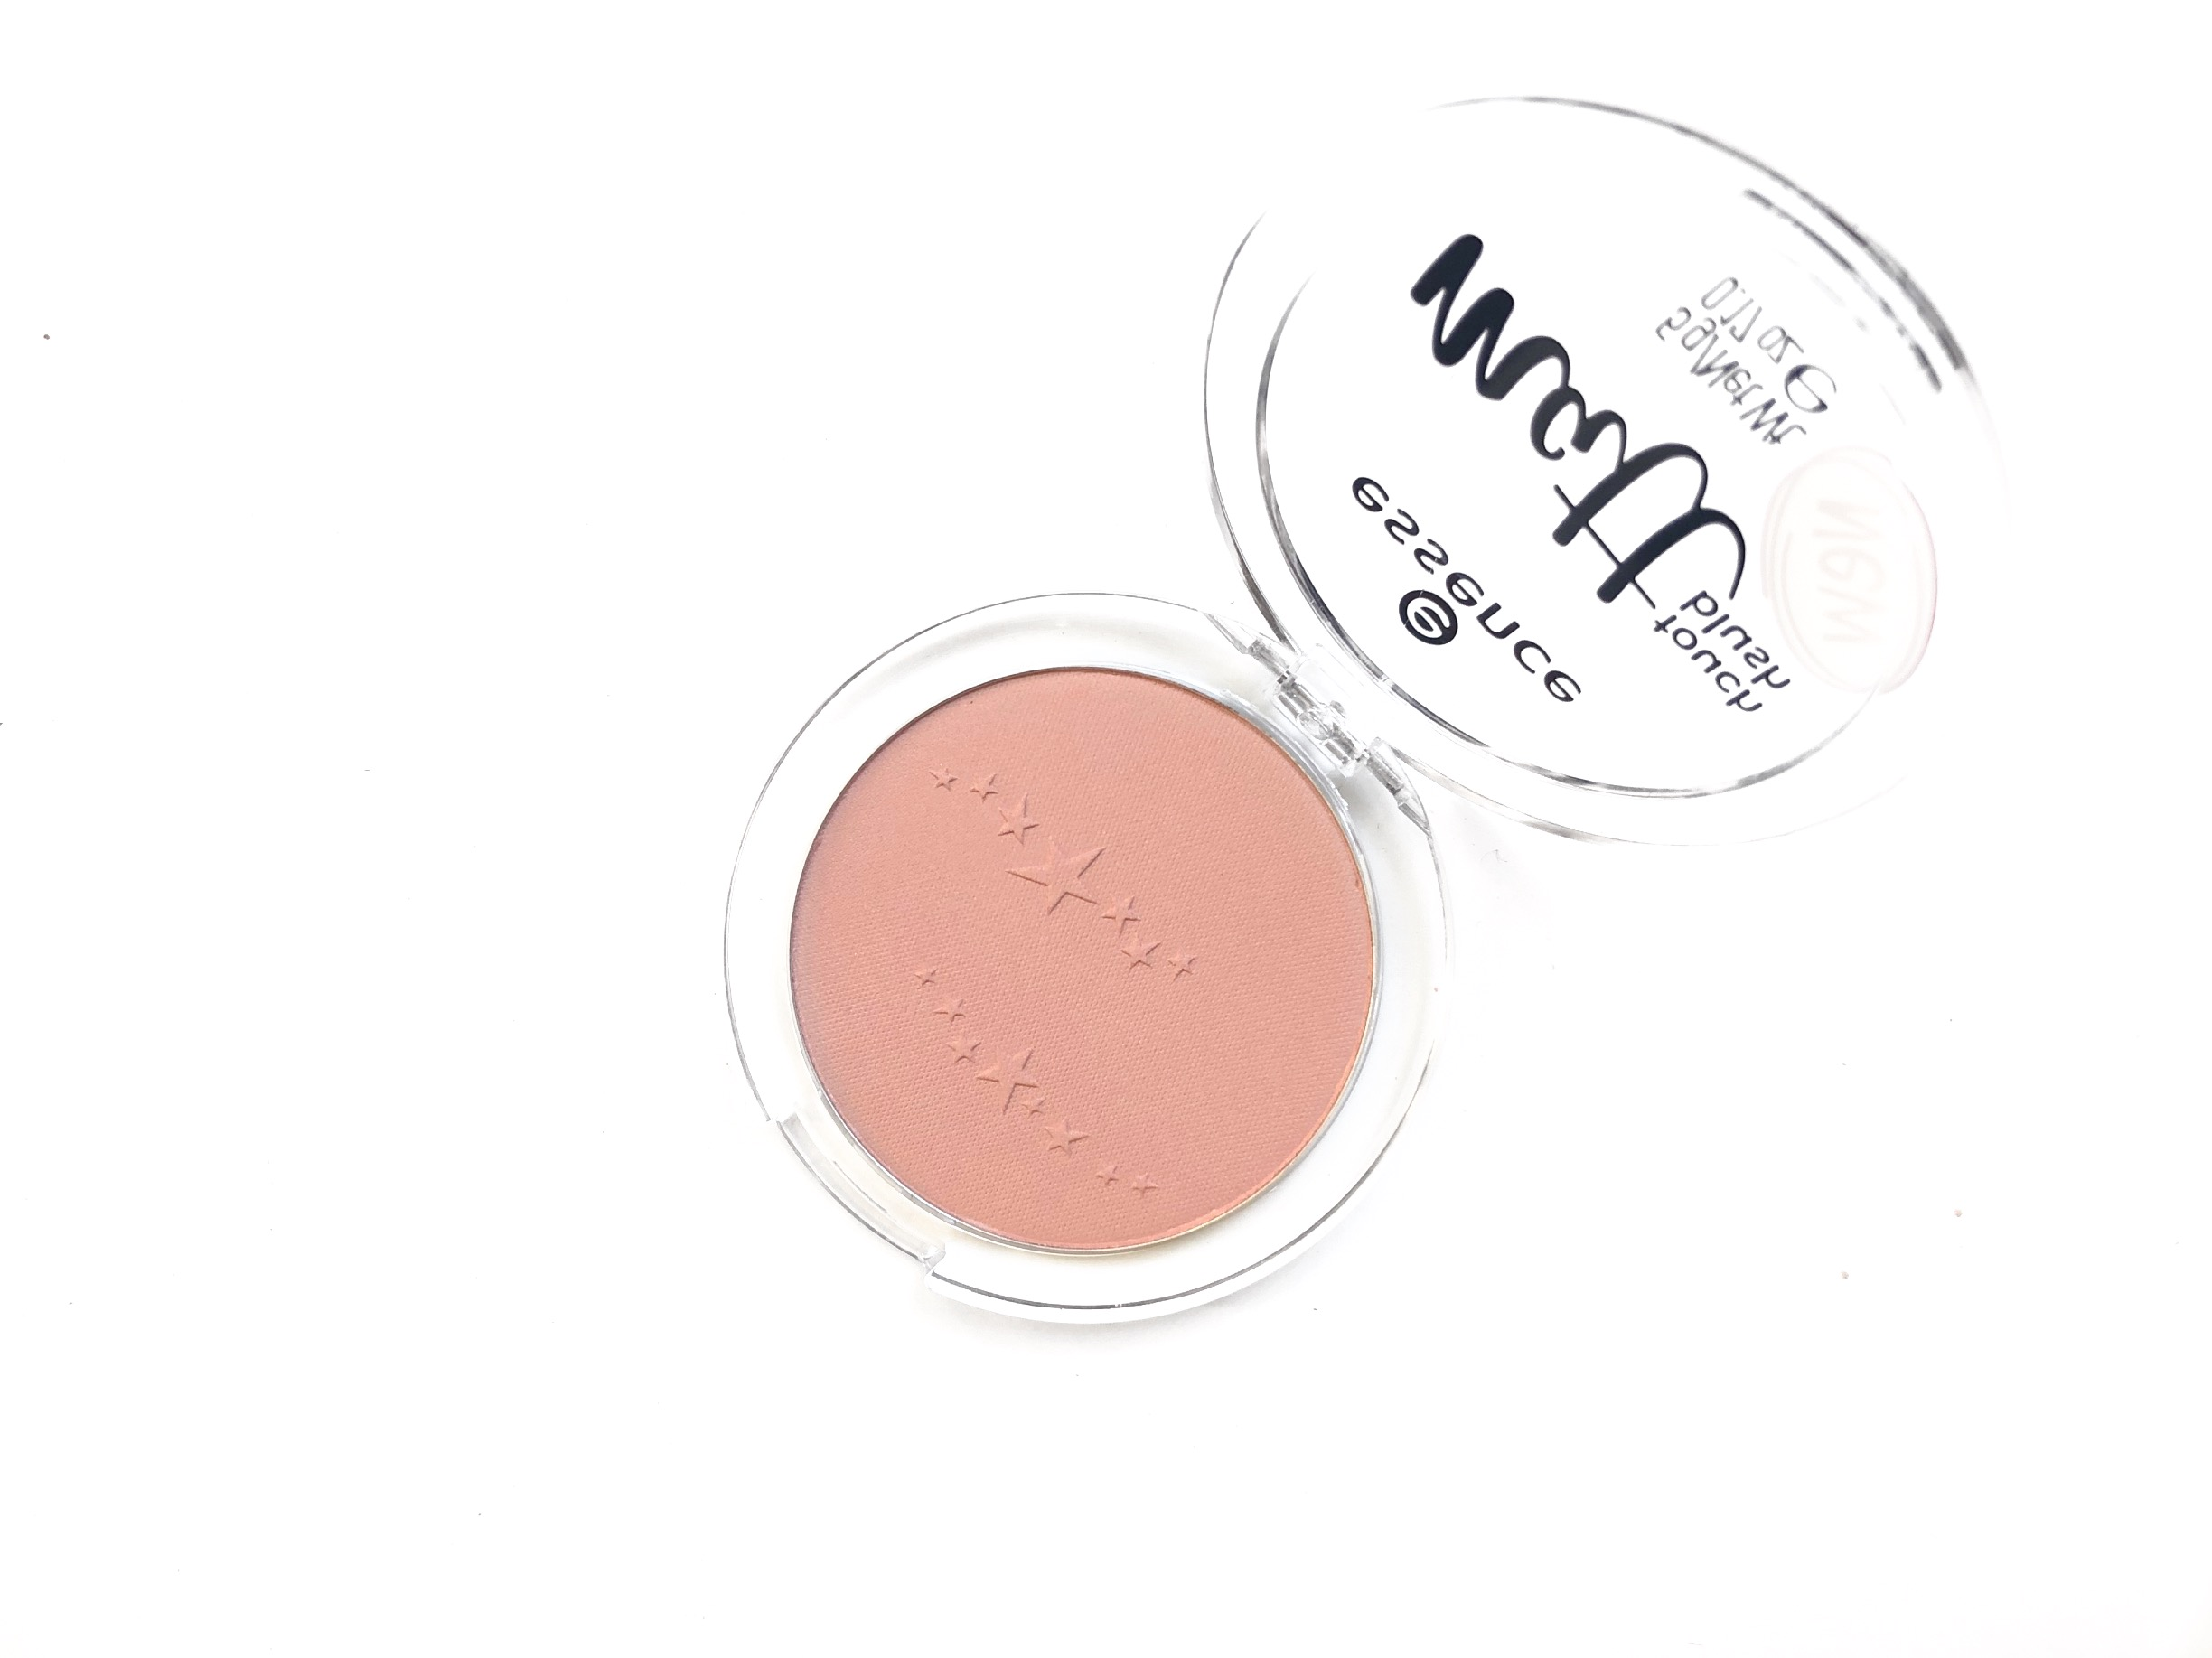 Essence 40 Blossom Me Up! Matt Touch Blush Review 2